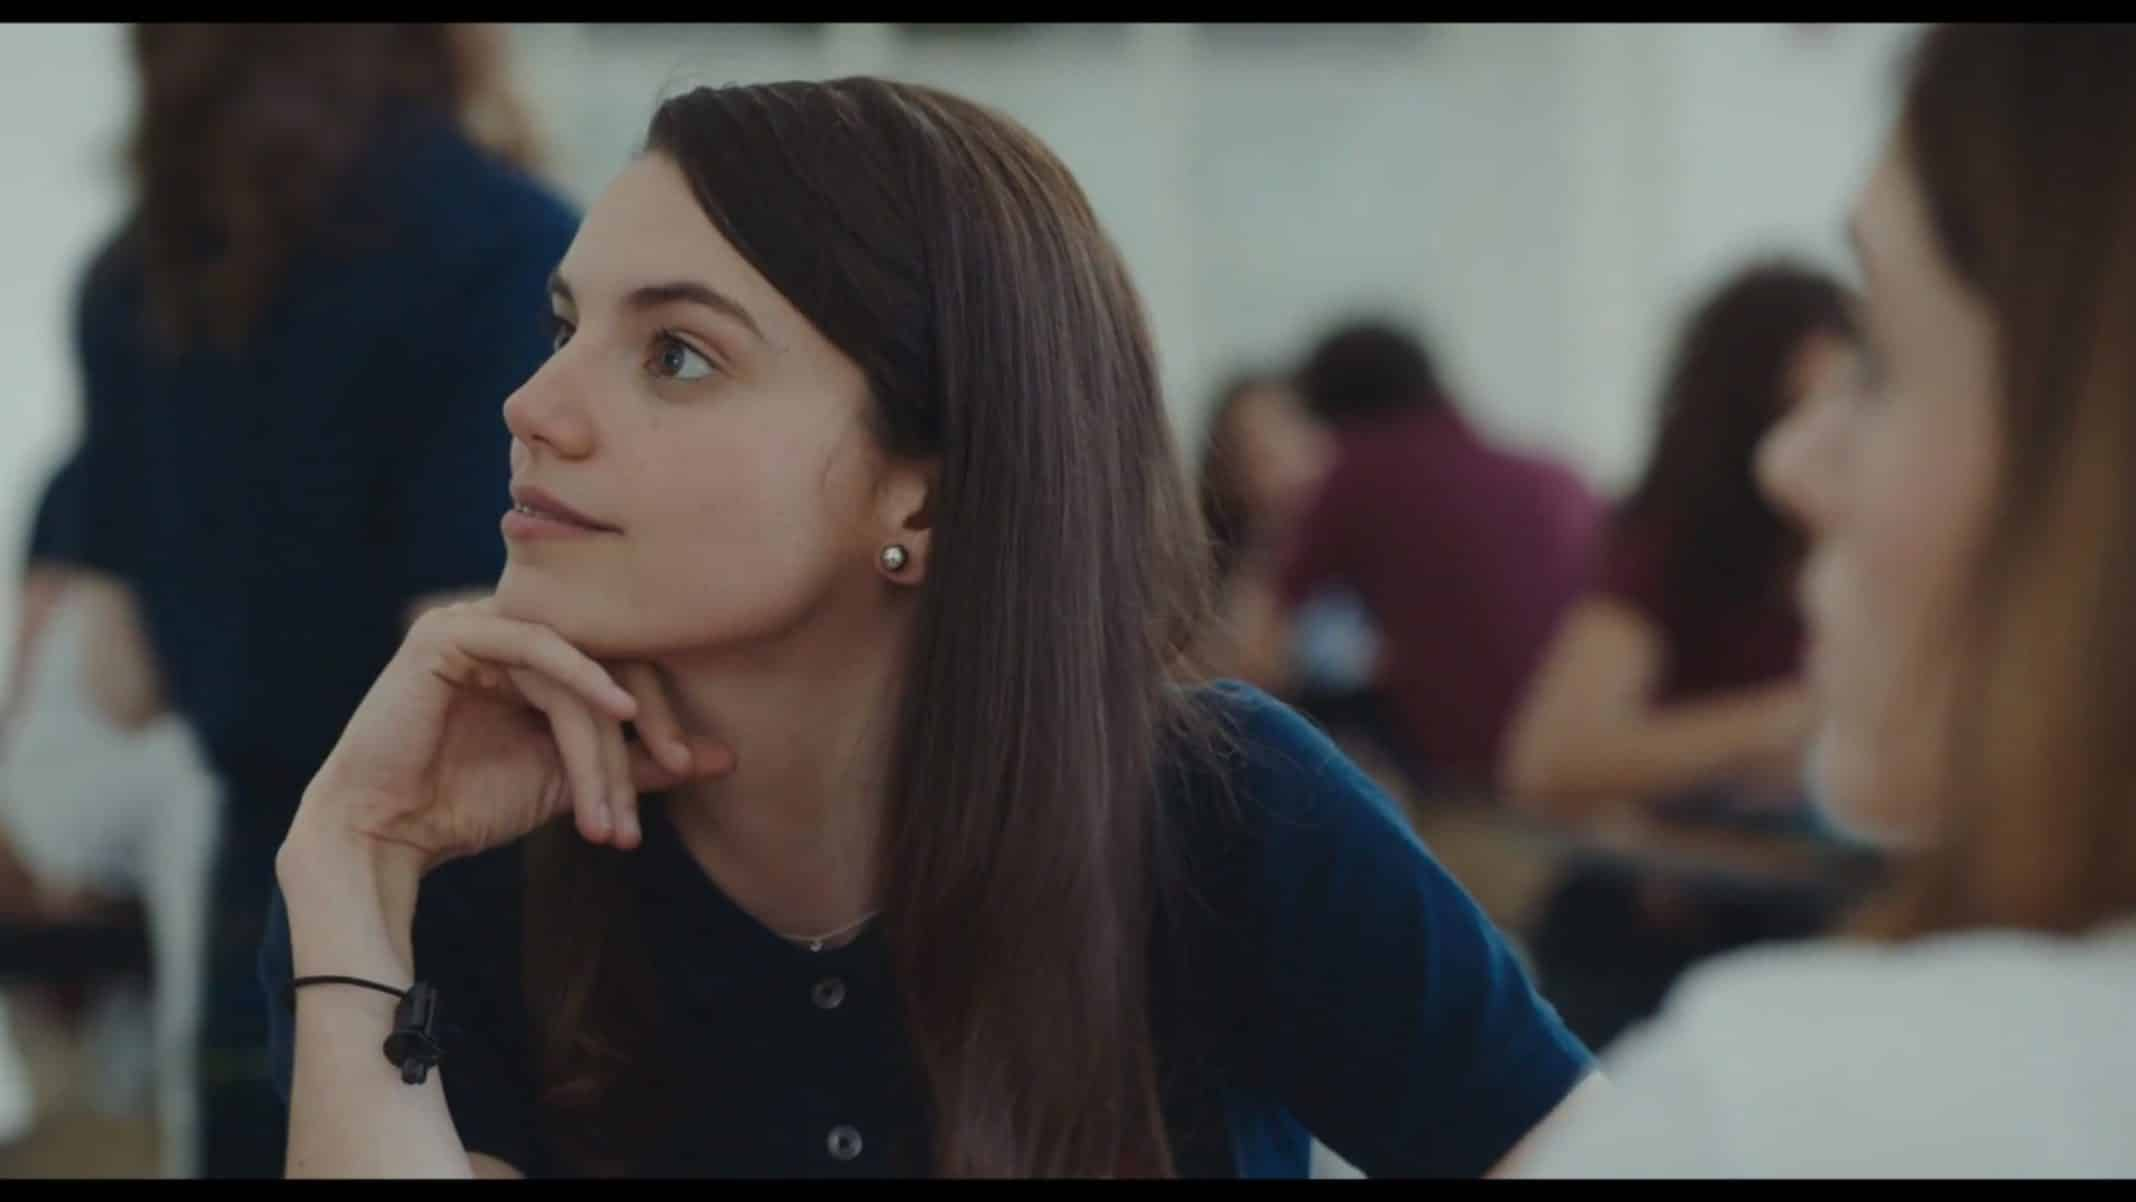 Laura (Francesca Reale) thinking to herself.